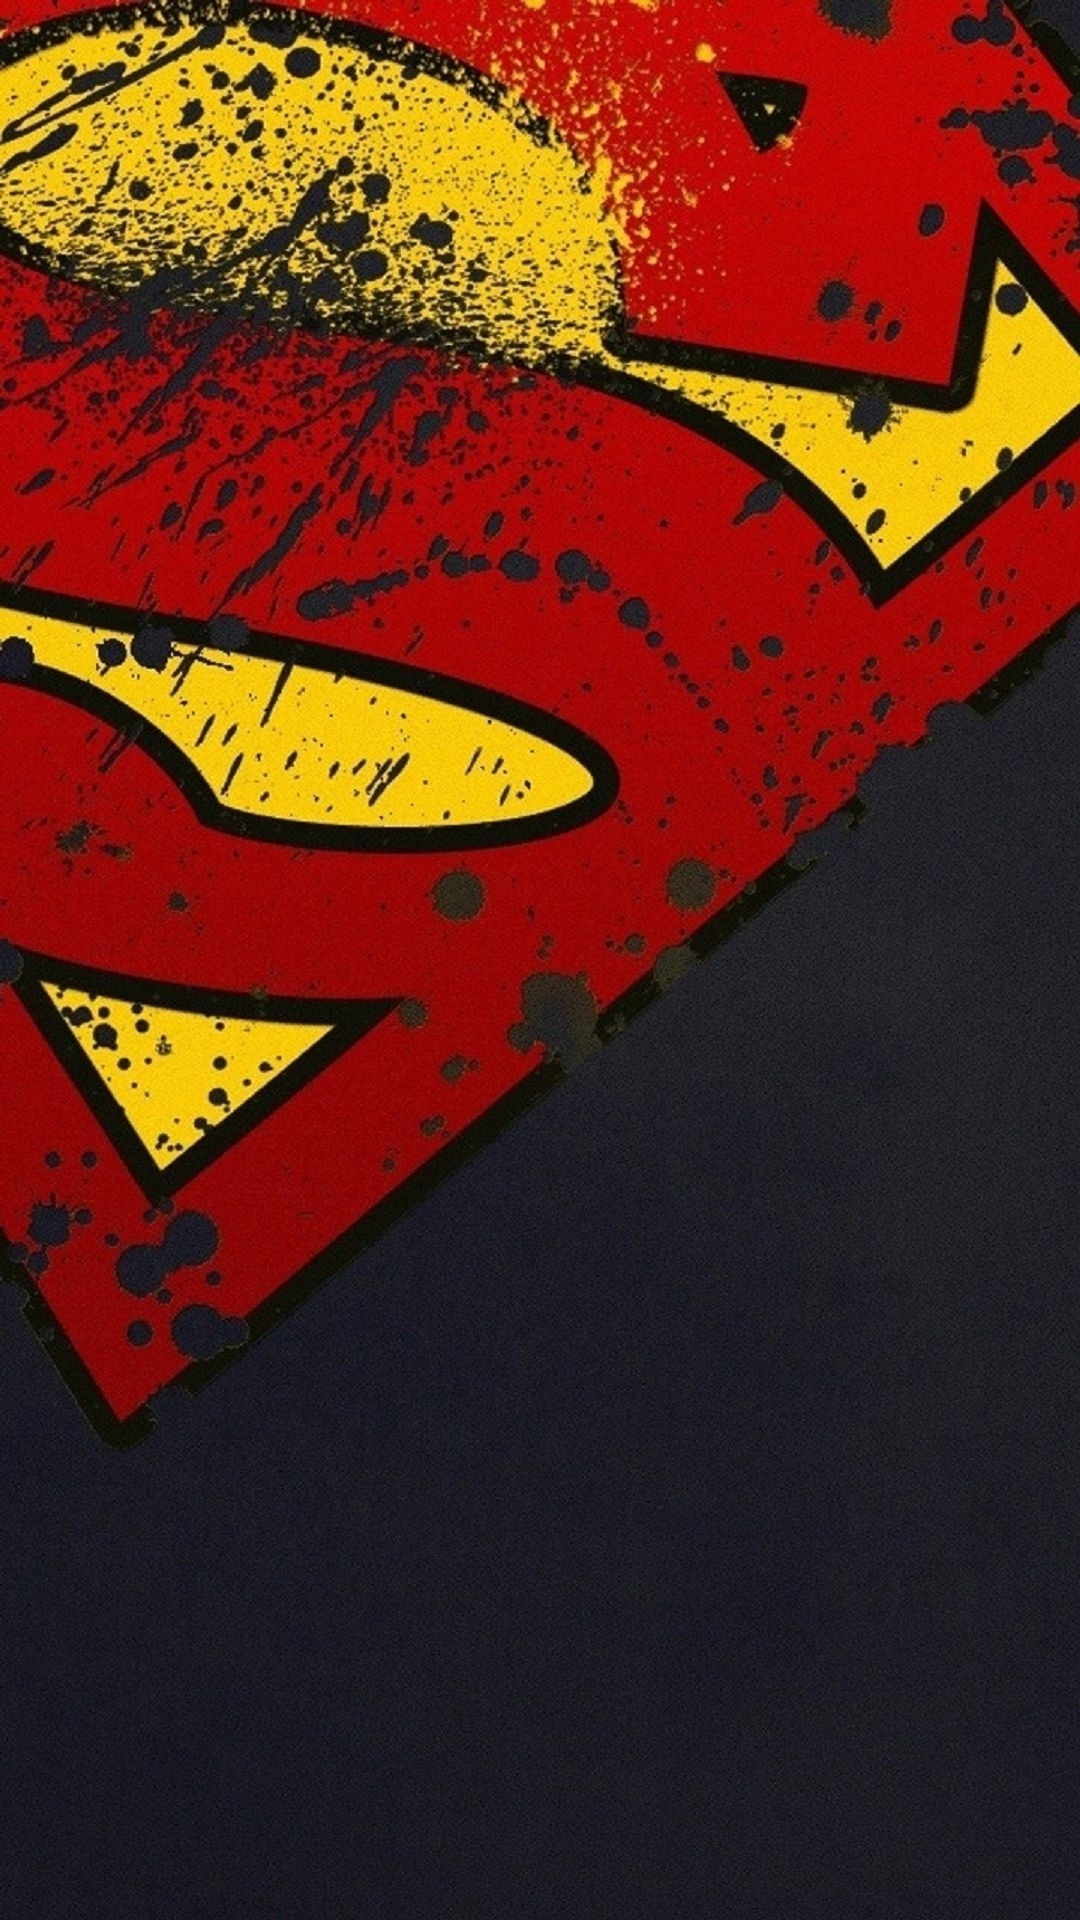 superman logo iphone wallpaper hd - wallpapersafari | free